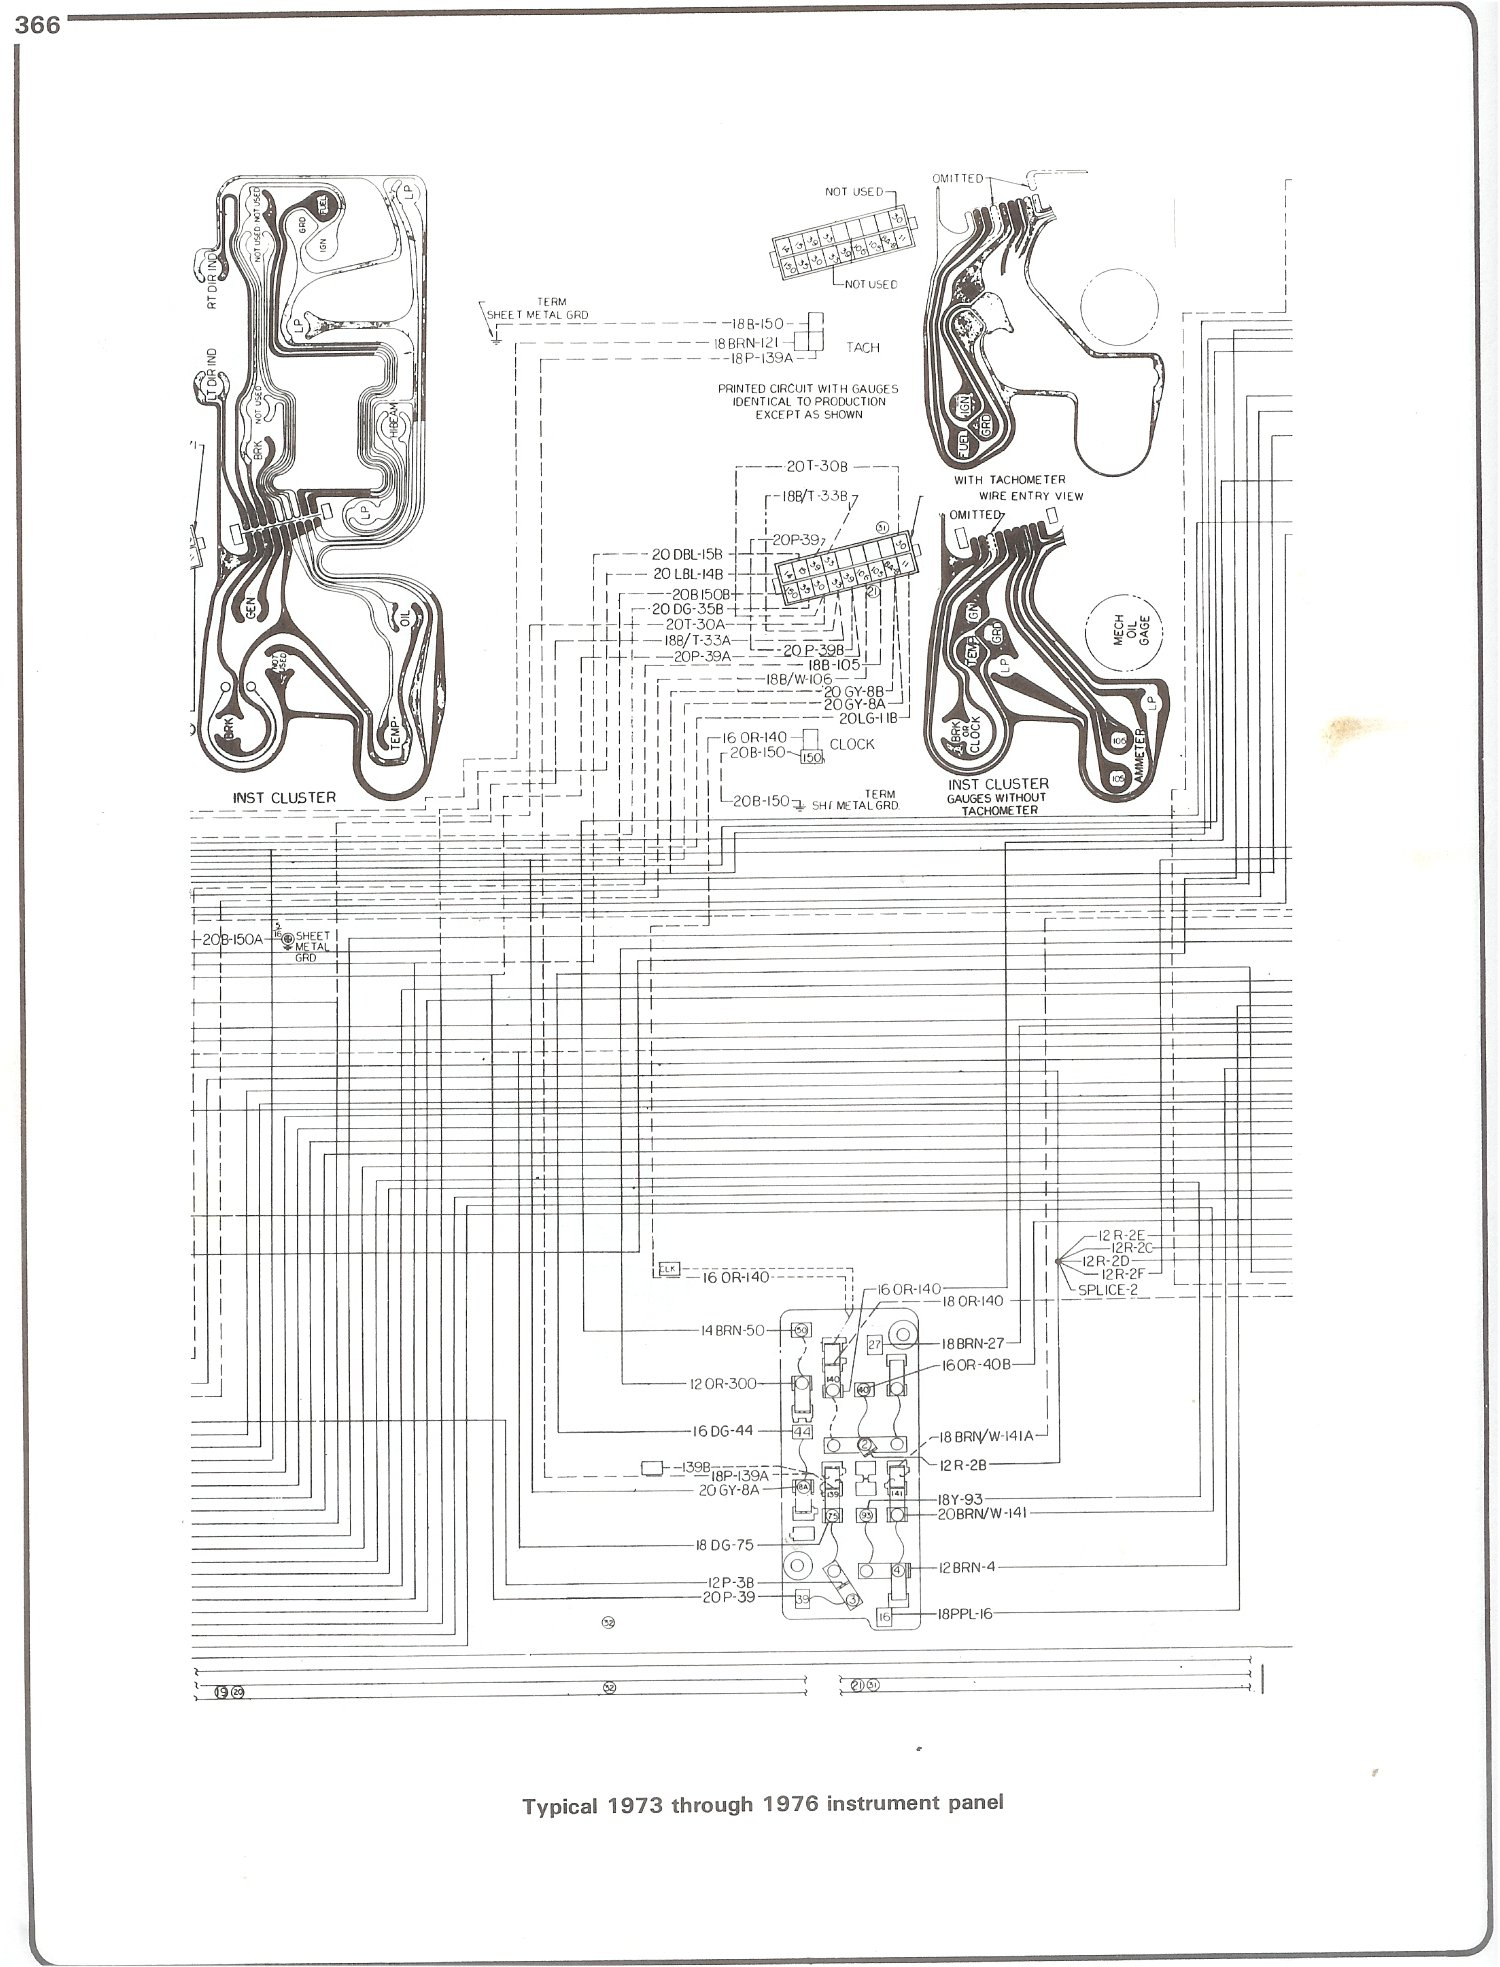 87 chevy wiring diagram schematic 1966    chevy       wiring       diagram       wiring       diagram    database  1966    chevy       wiring       diagram       wiring       diagram    database